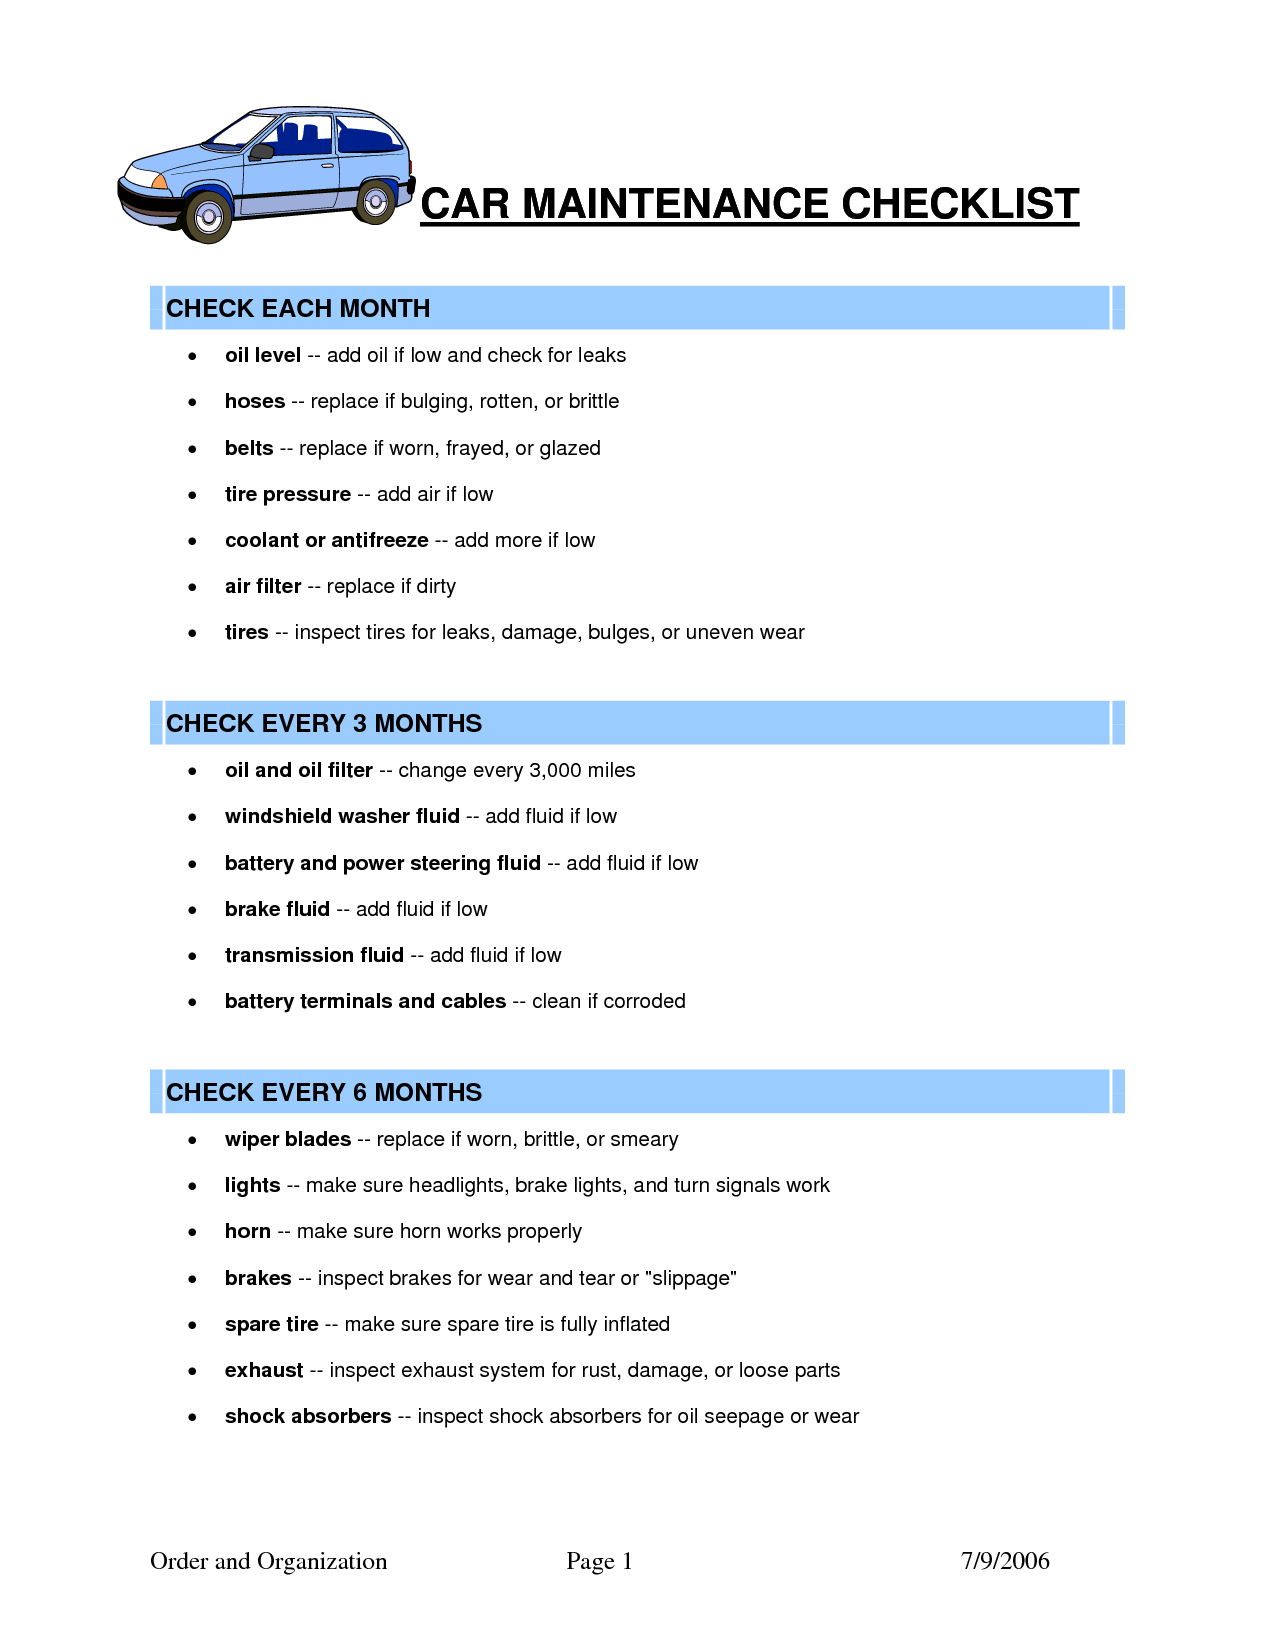 Routine car maintenance checklist 12